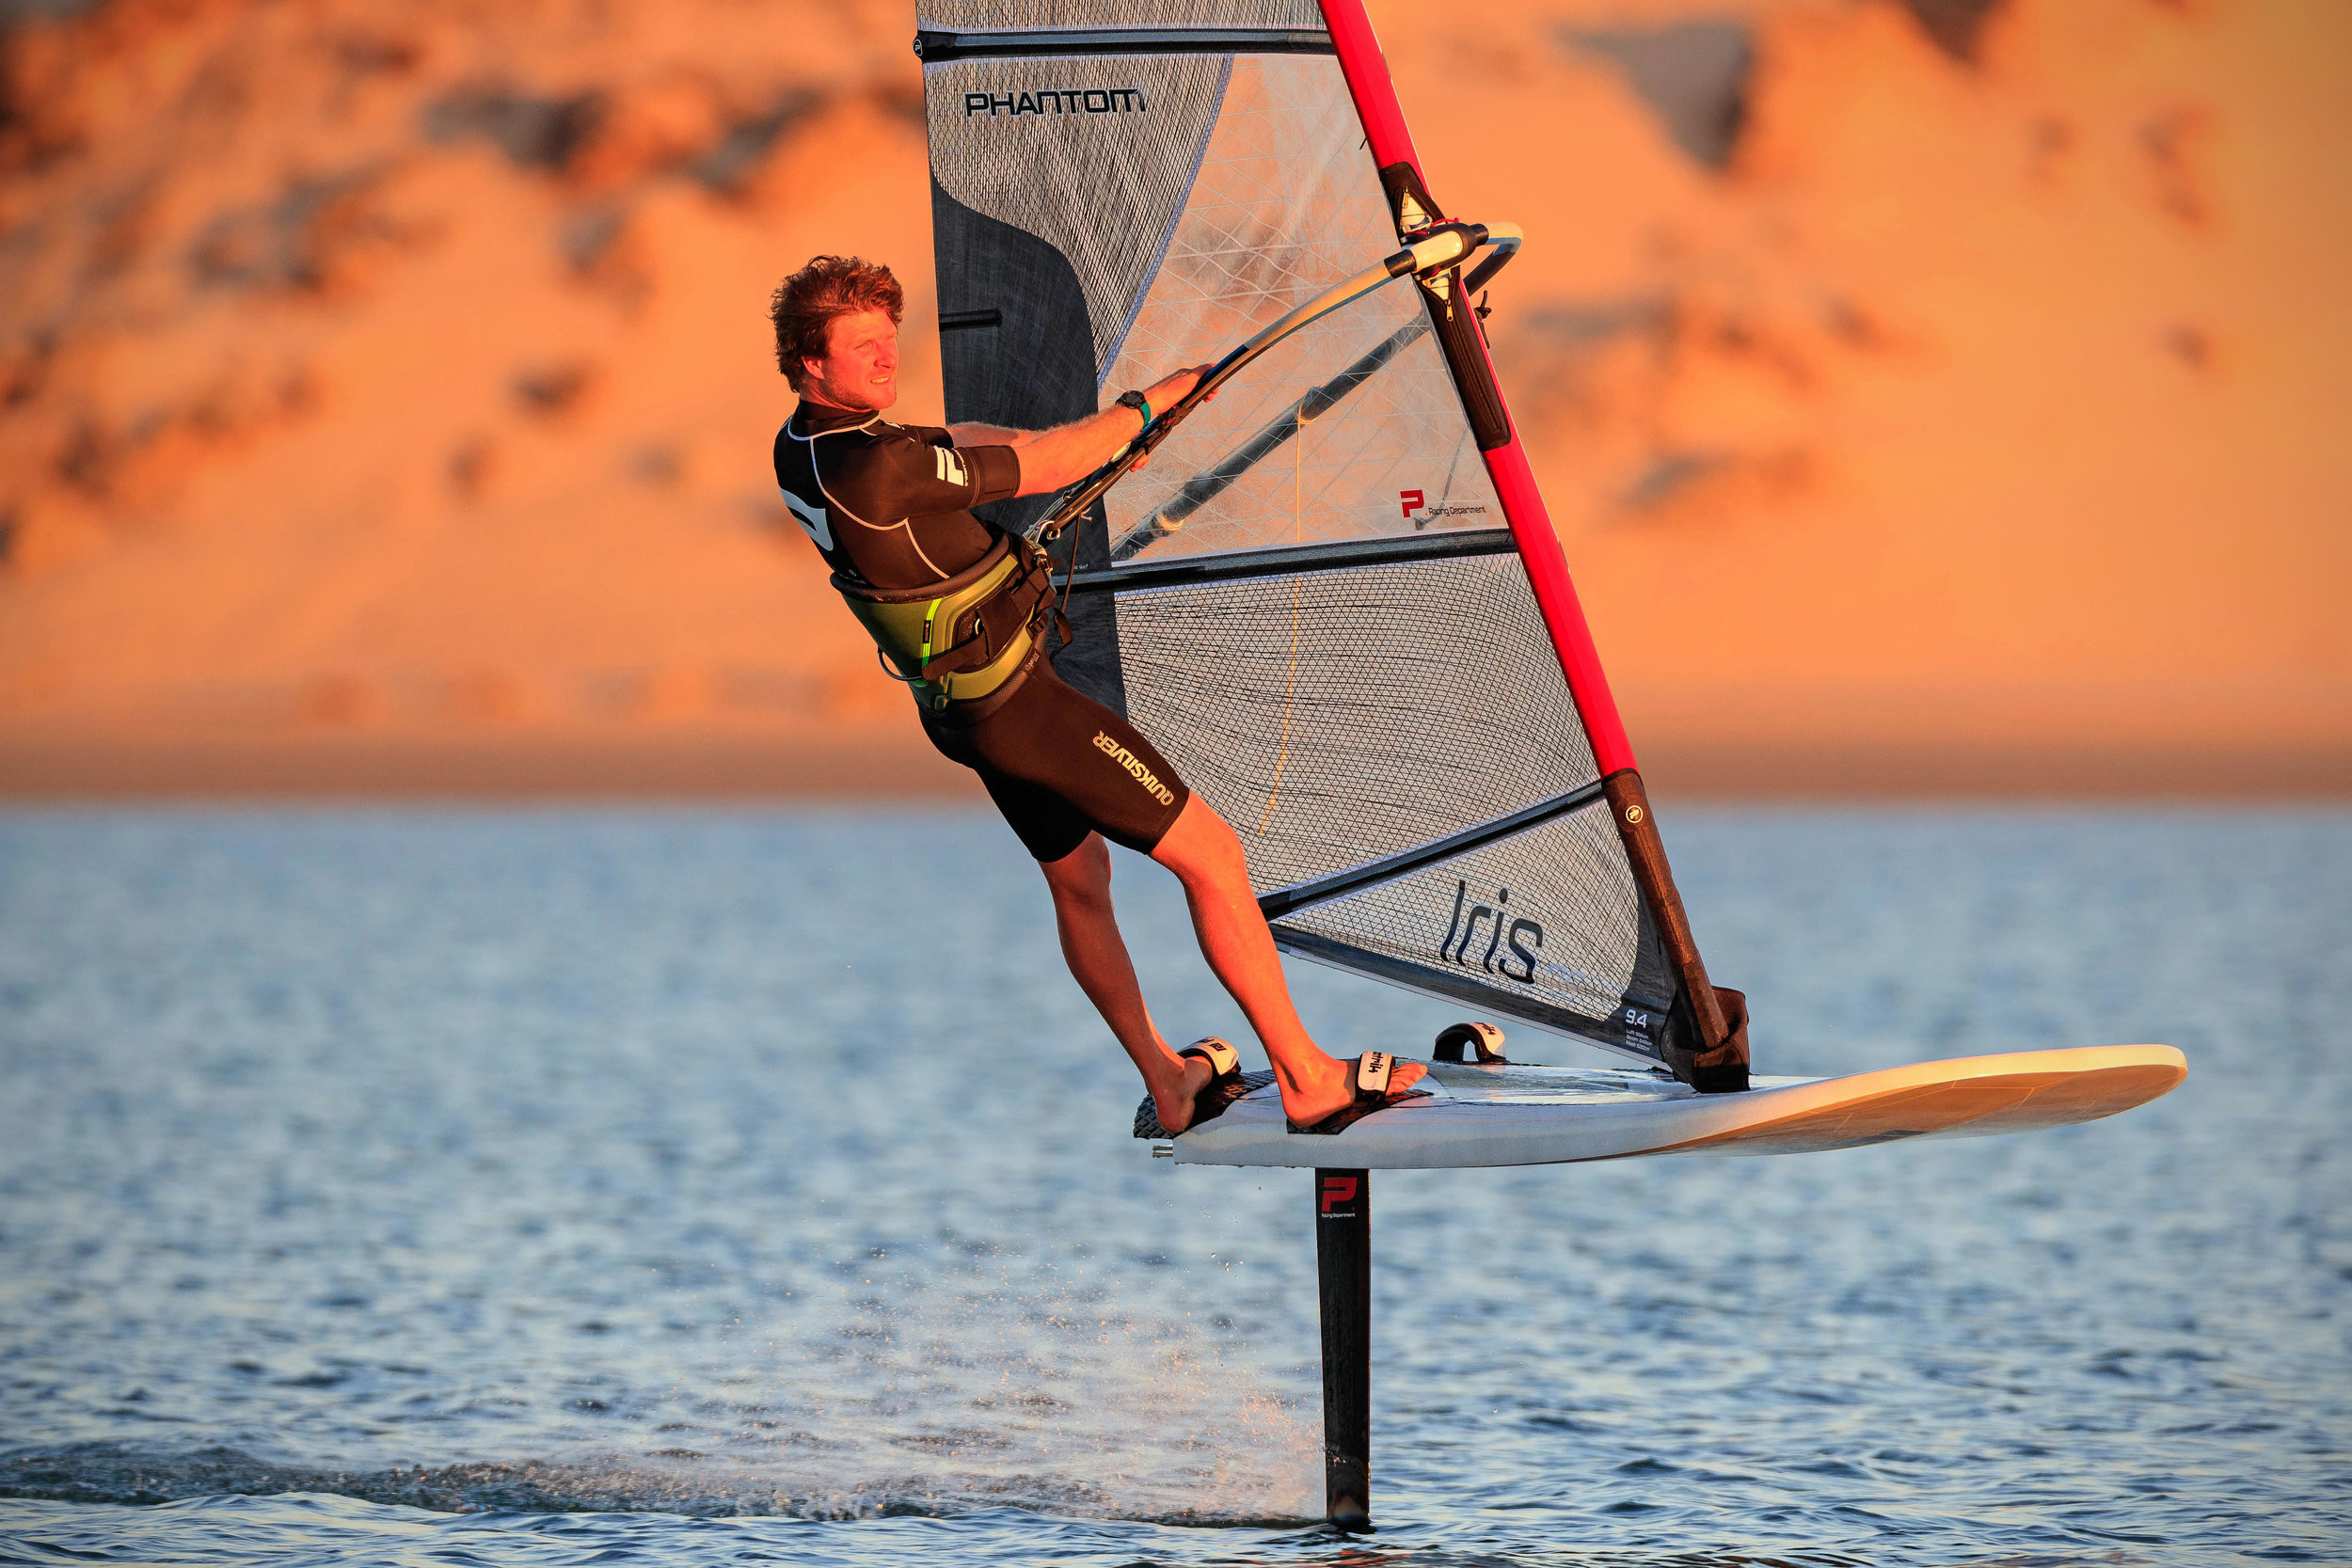 January 2019 - Launch of PHANTOM WINDSURFING foils